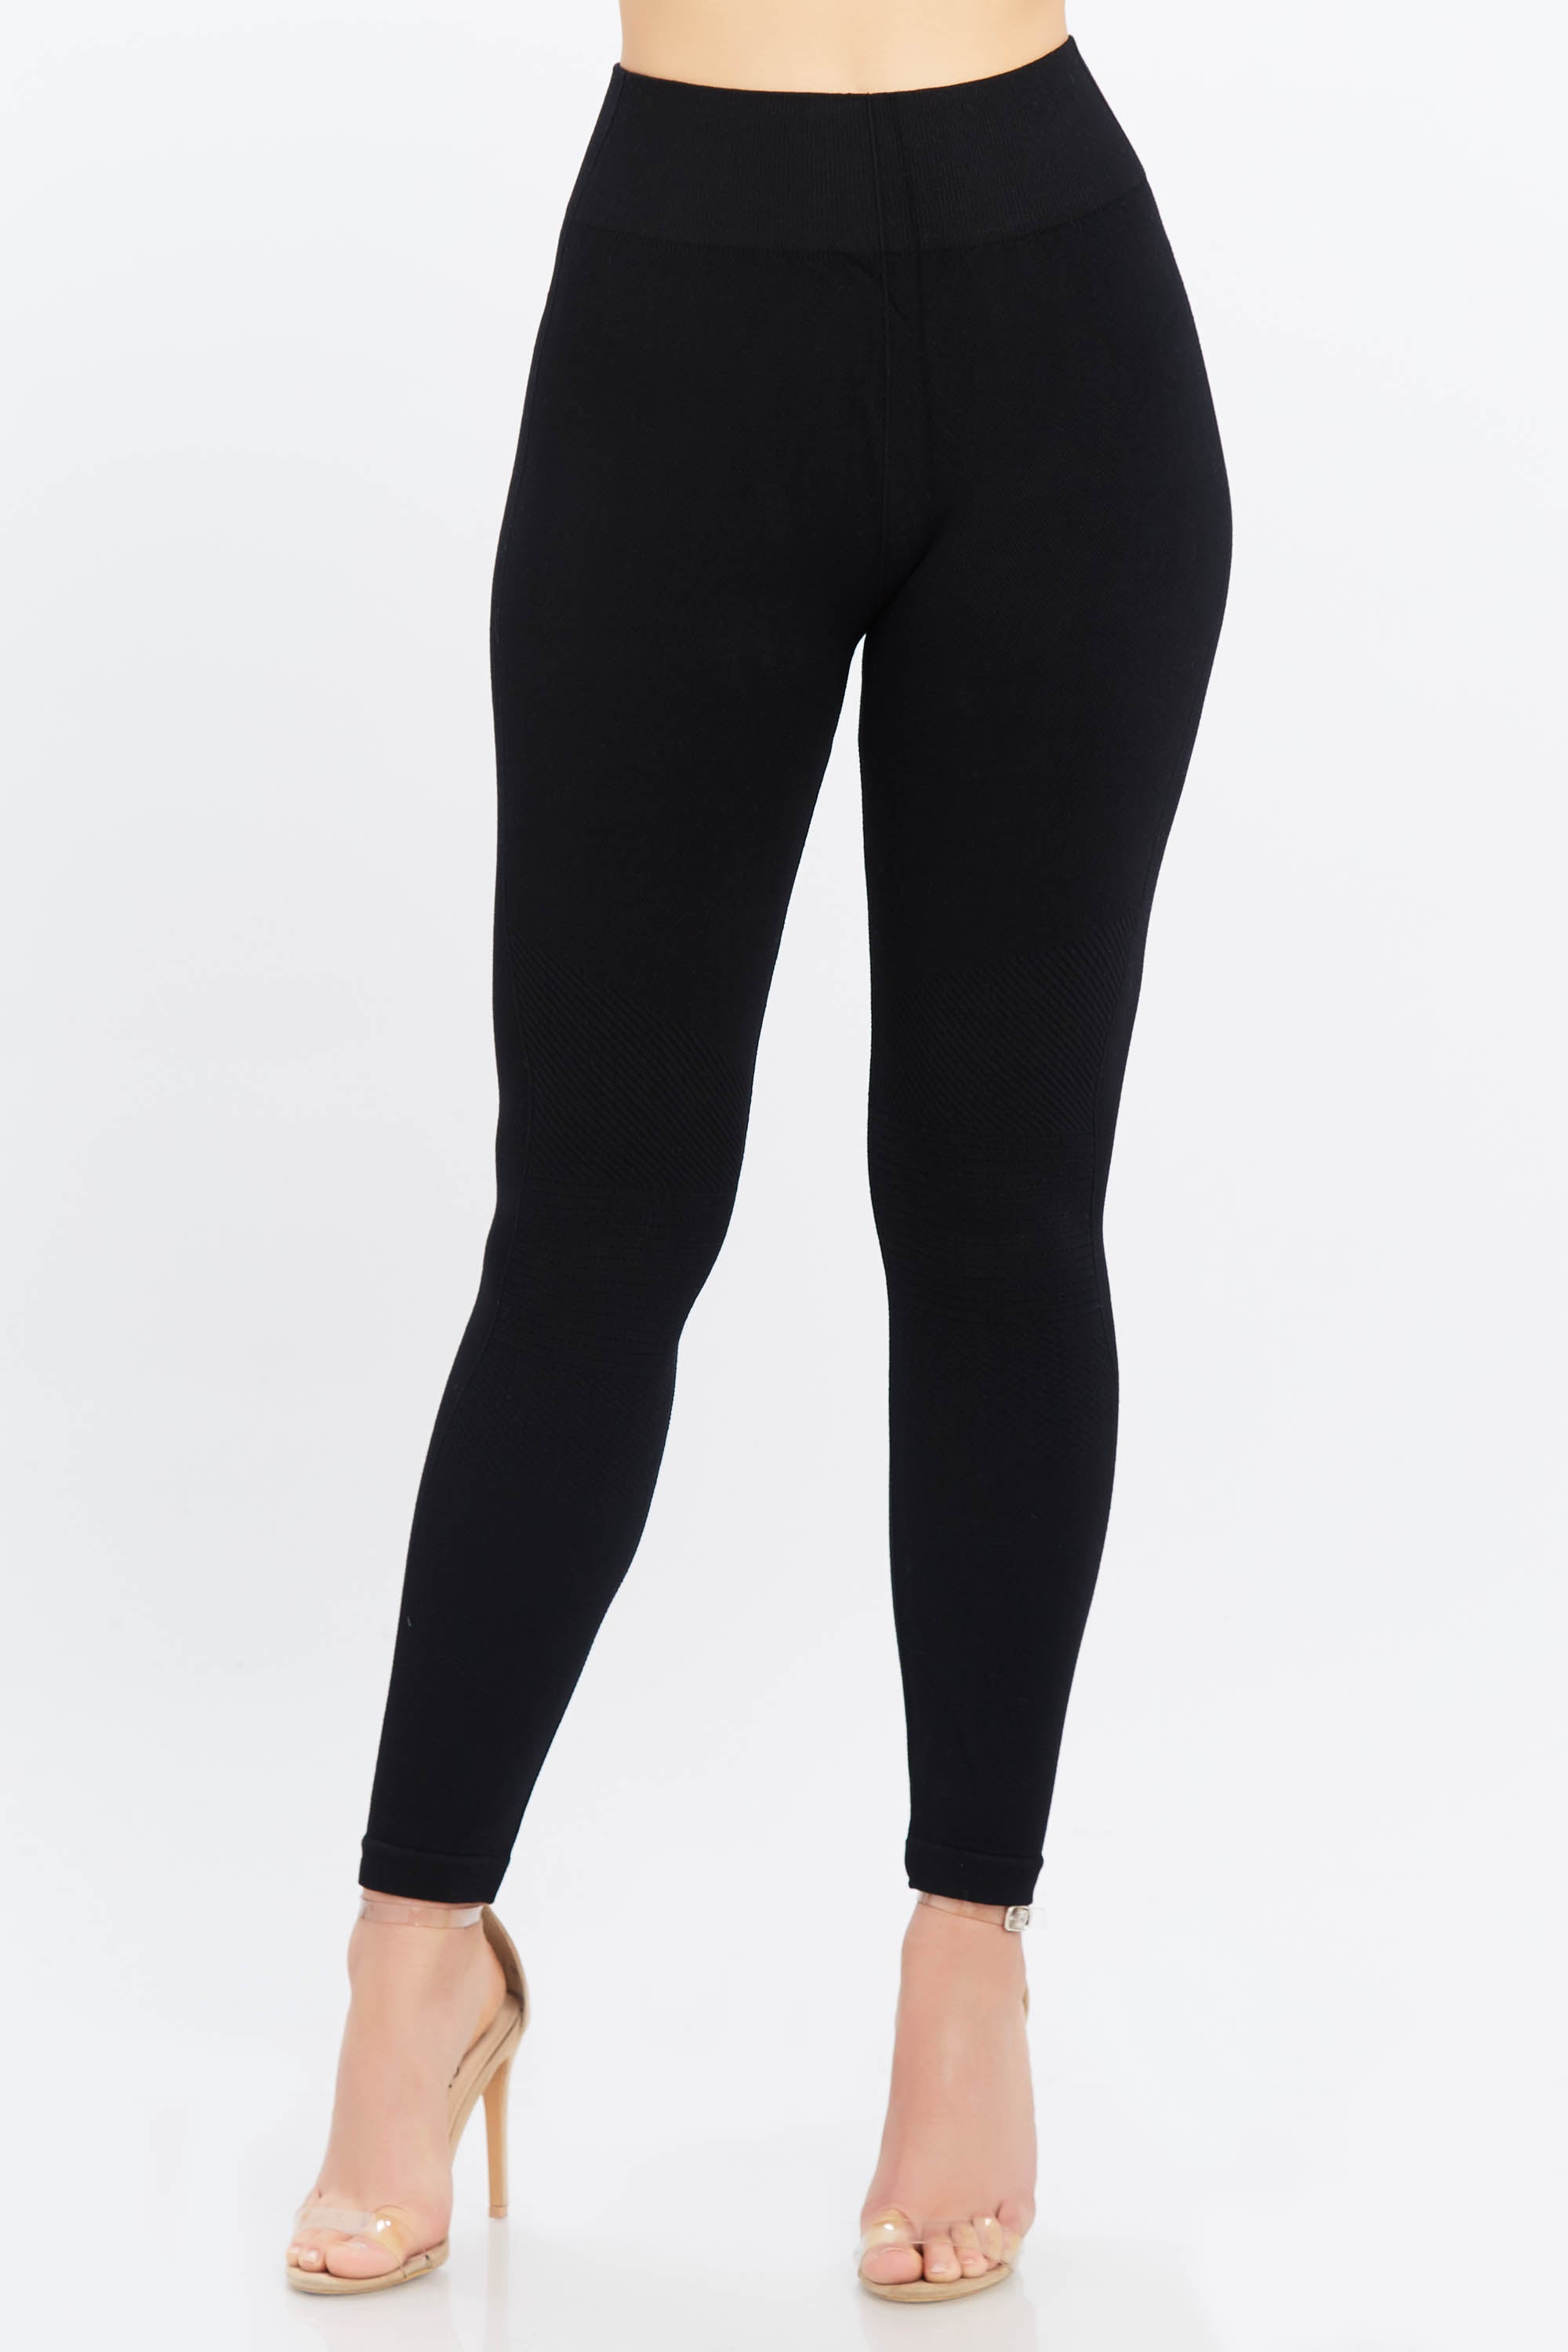 Never Wrong Legging - HoneyBum